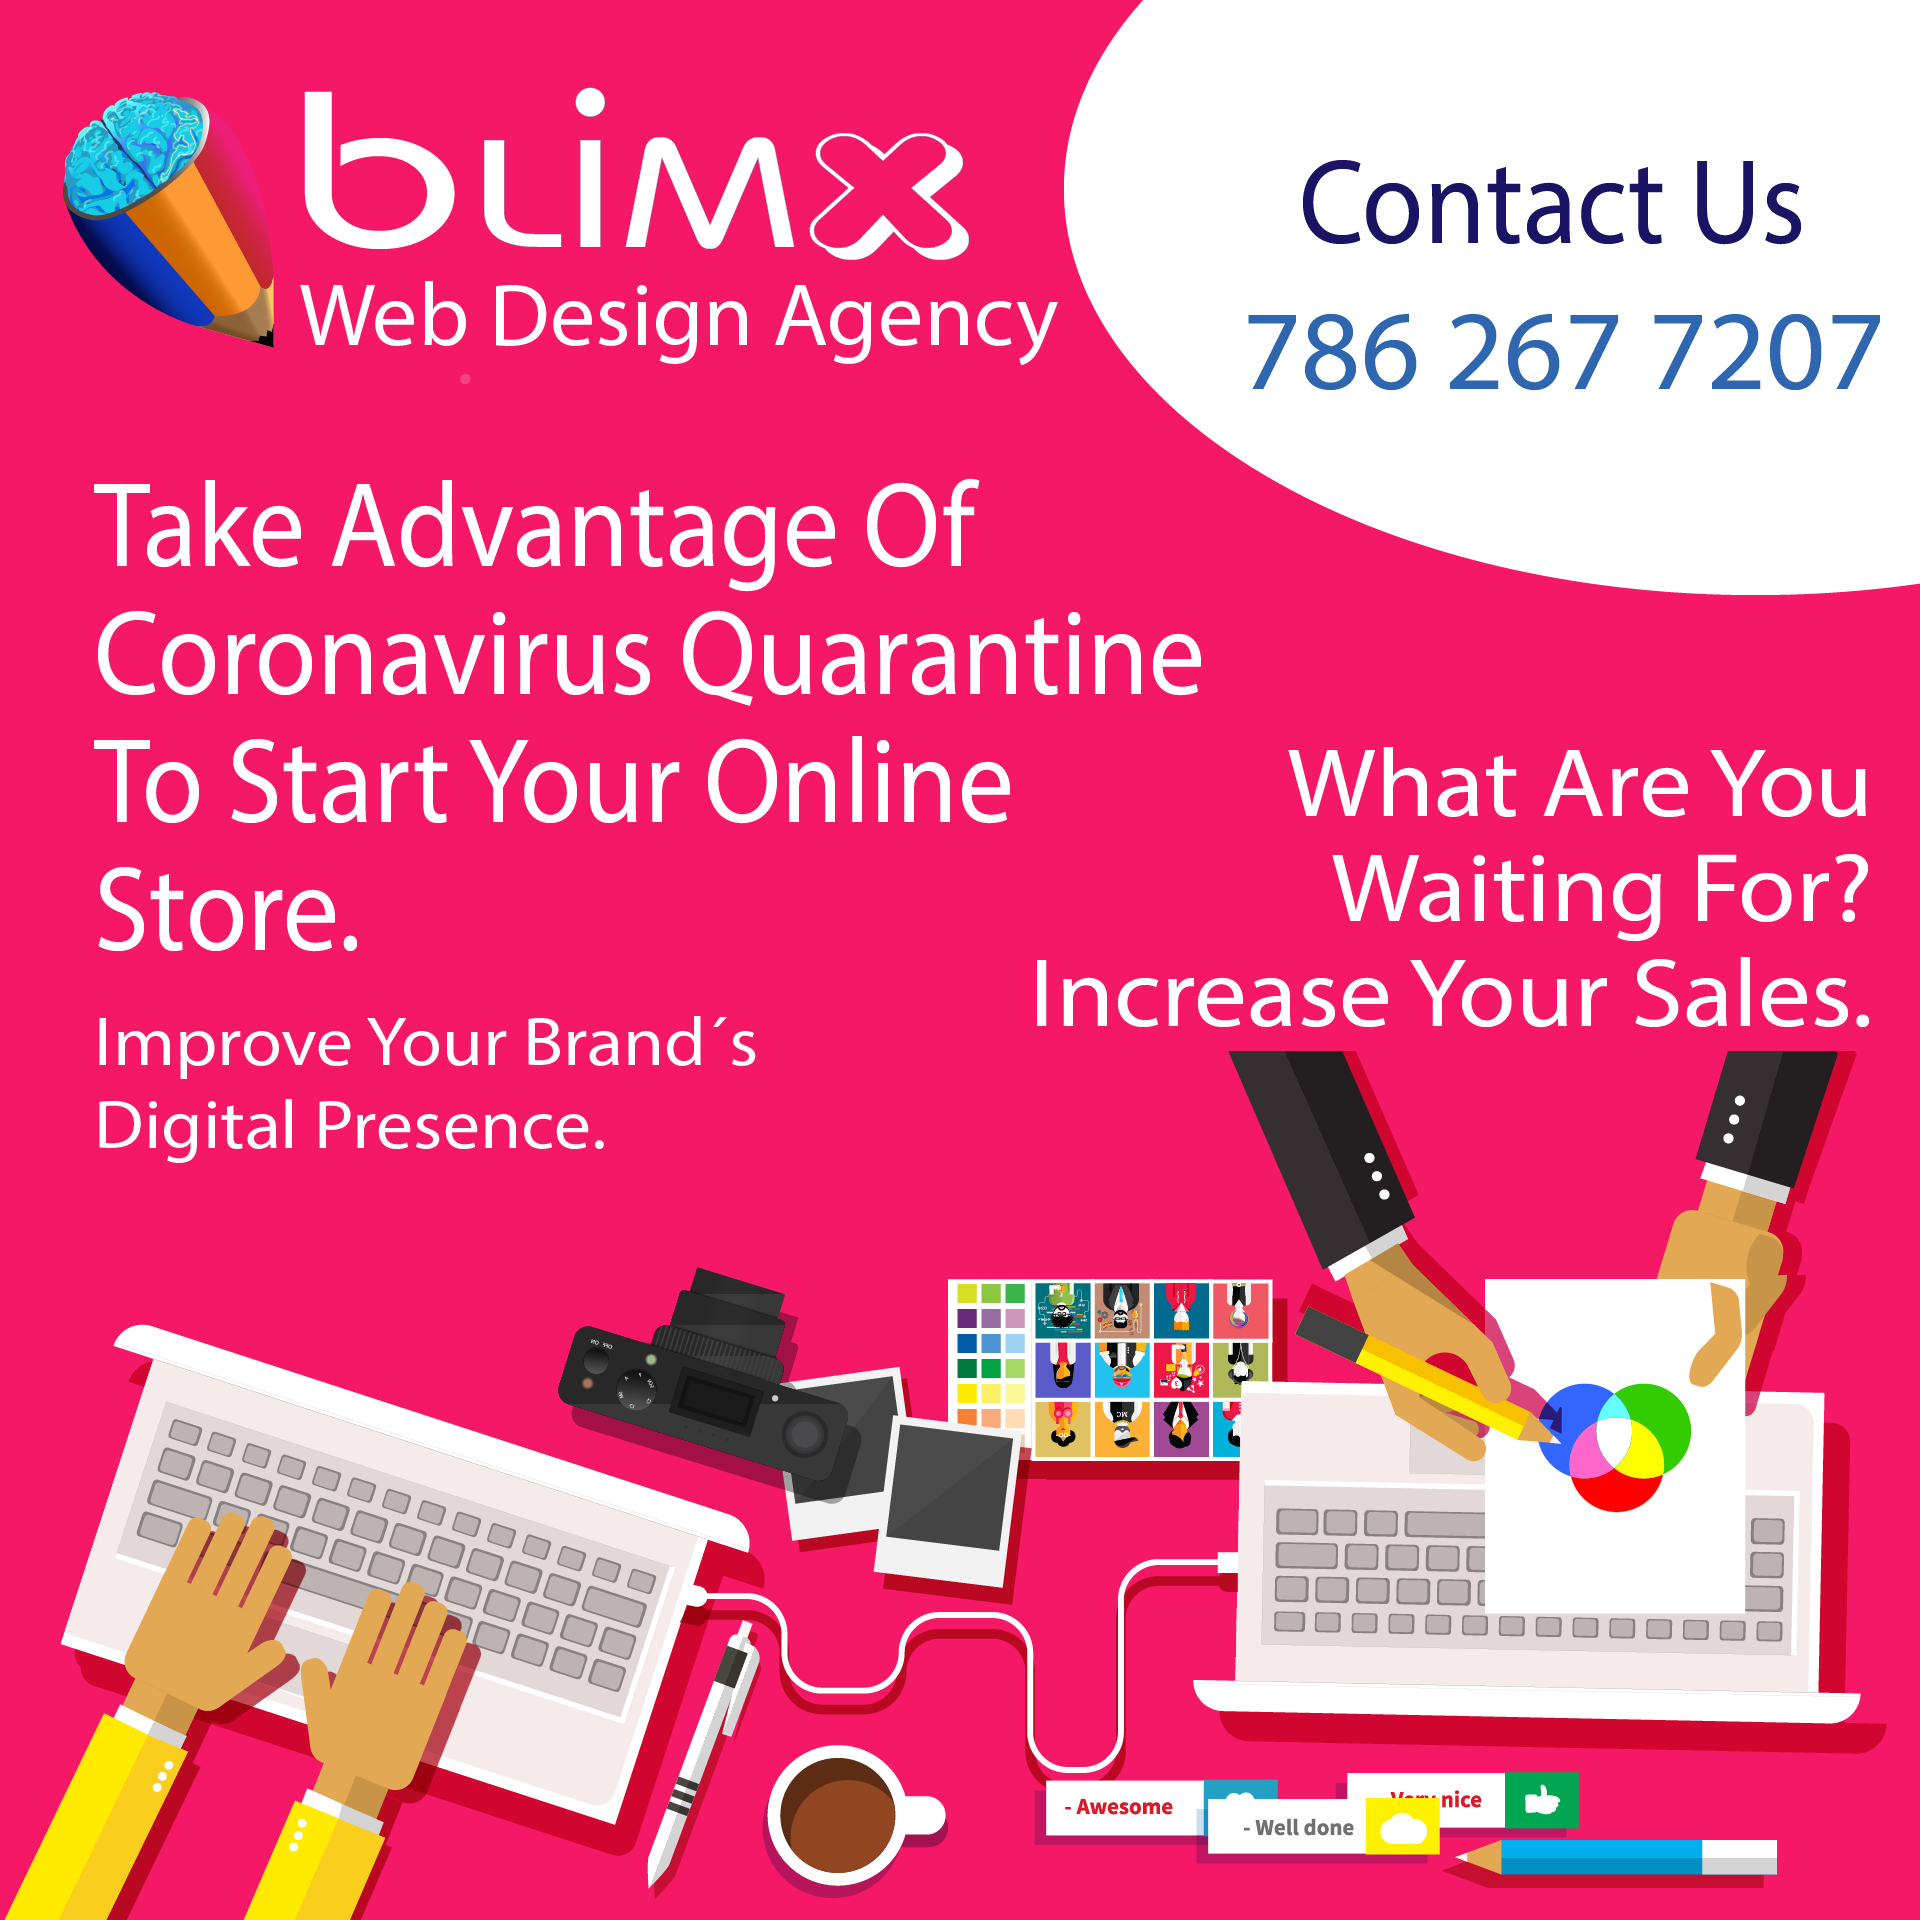 Do you want to have your online store to continue working during this coronavirus quarantine?